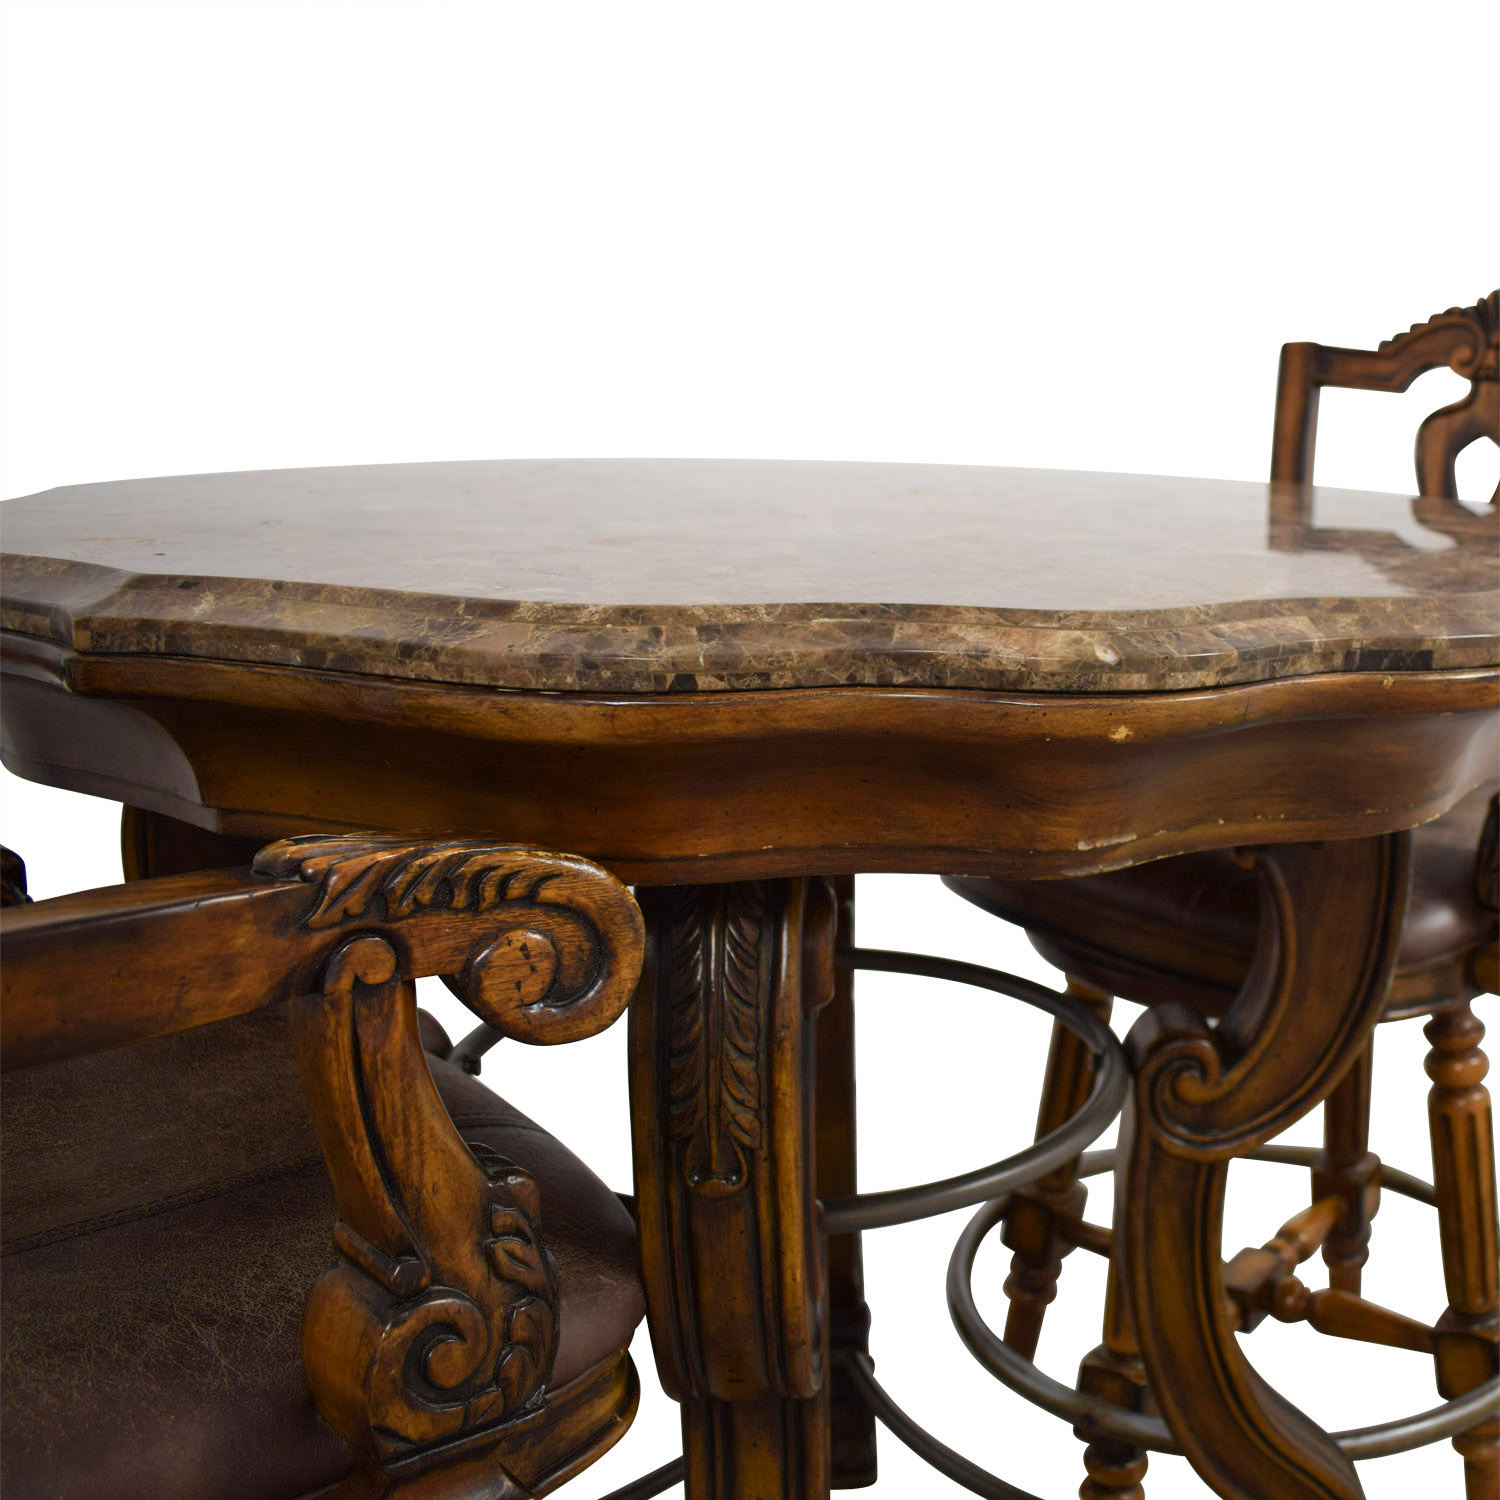 The Find Furniture: Ashley Furniture Ashley Furniture Faux Marble